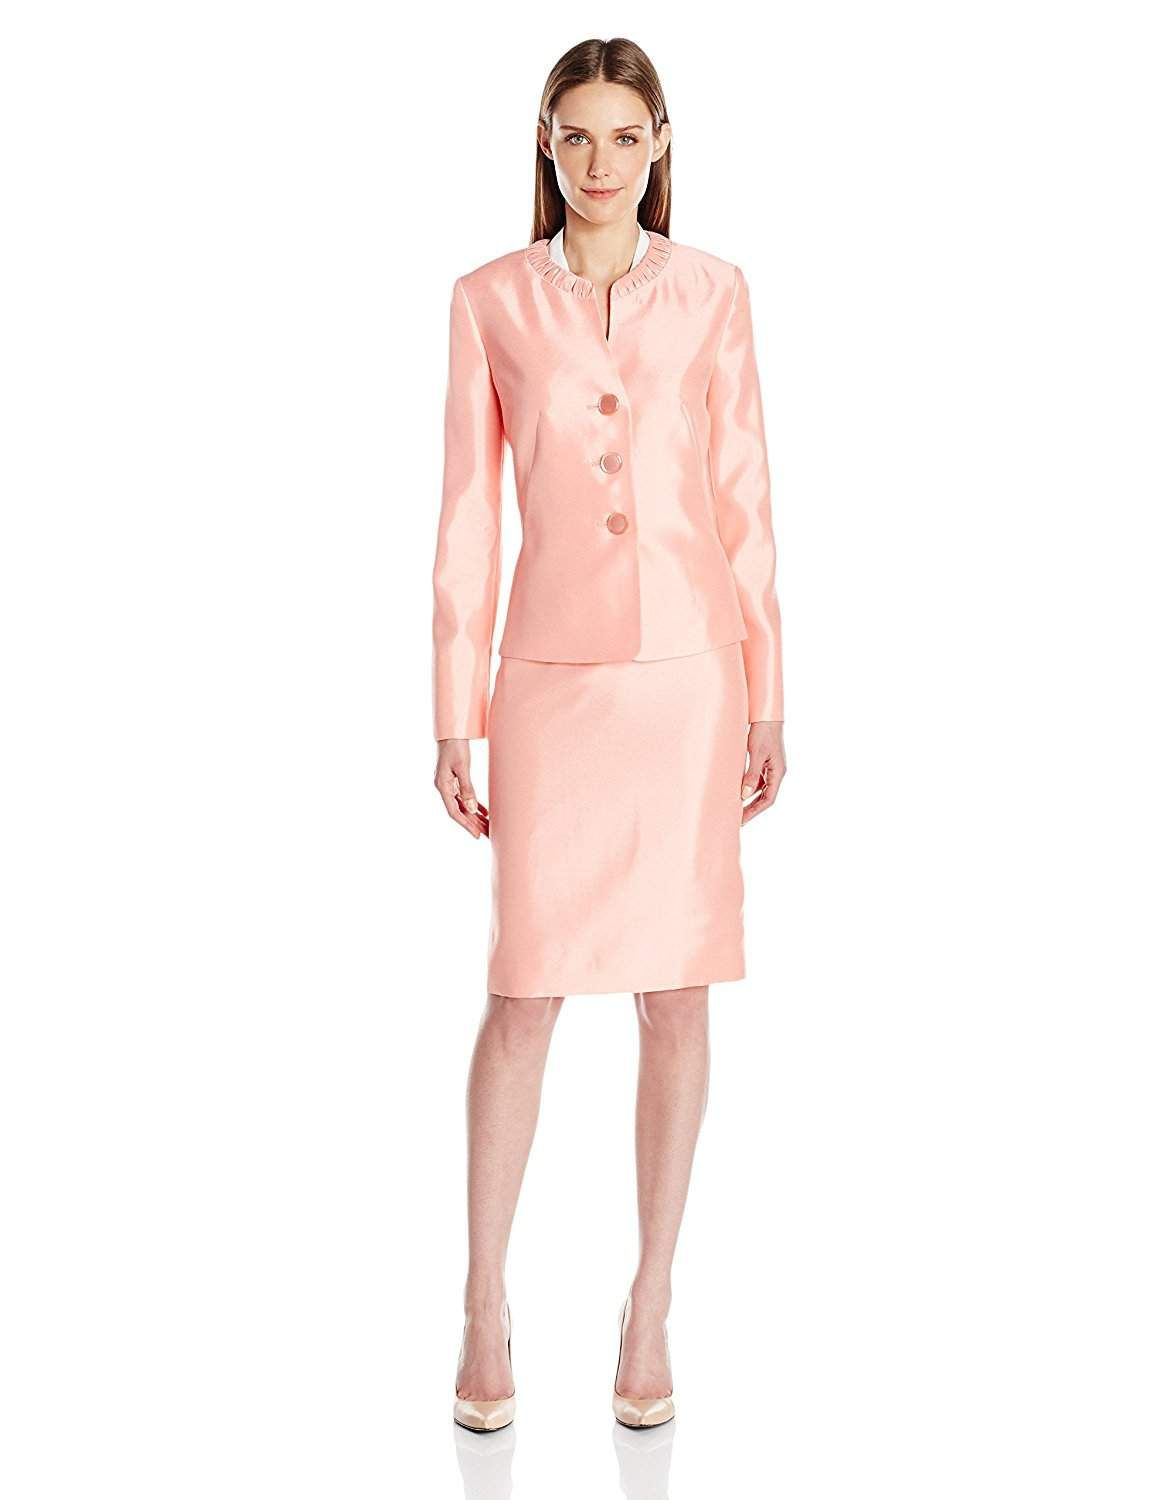 wedding suit for women, wedding outfit for women, ladies suits for ...